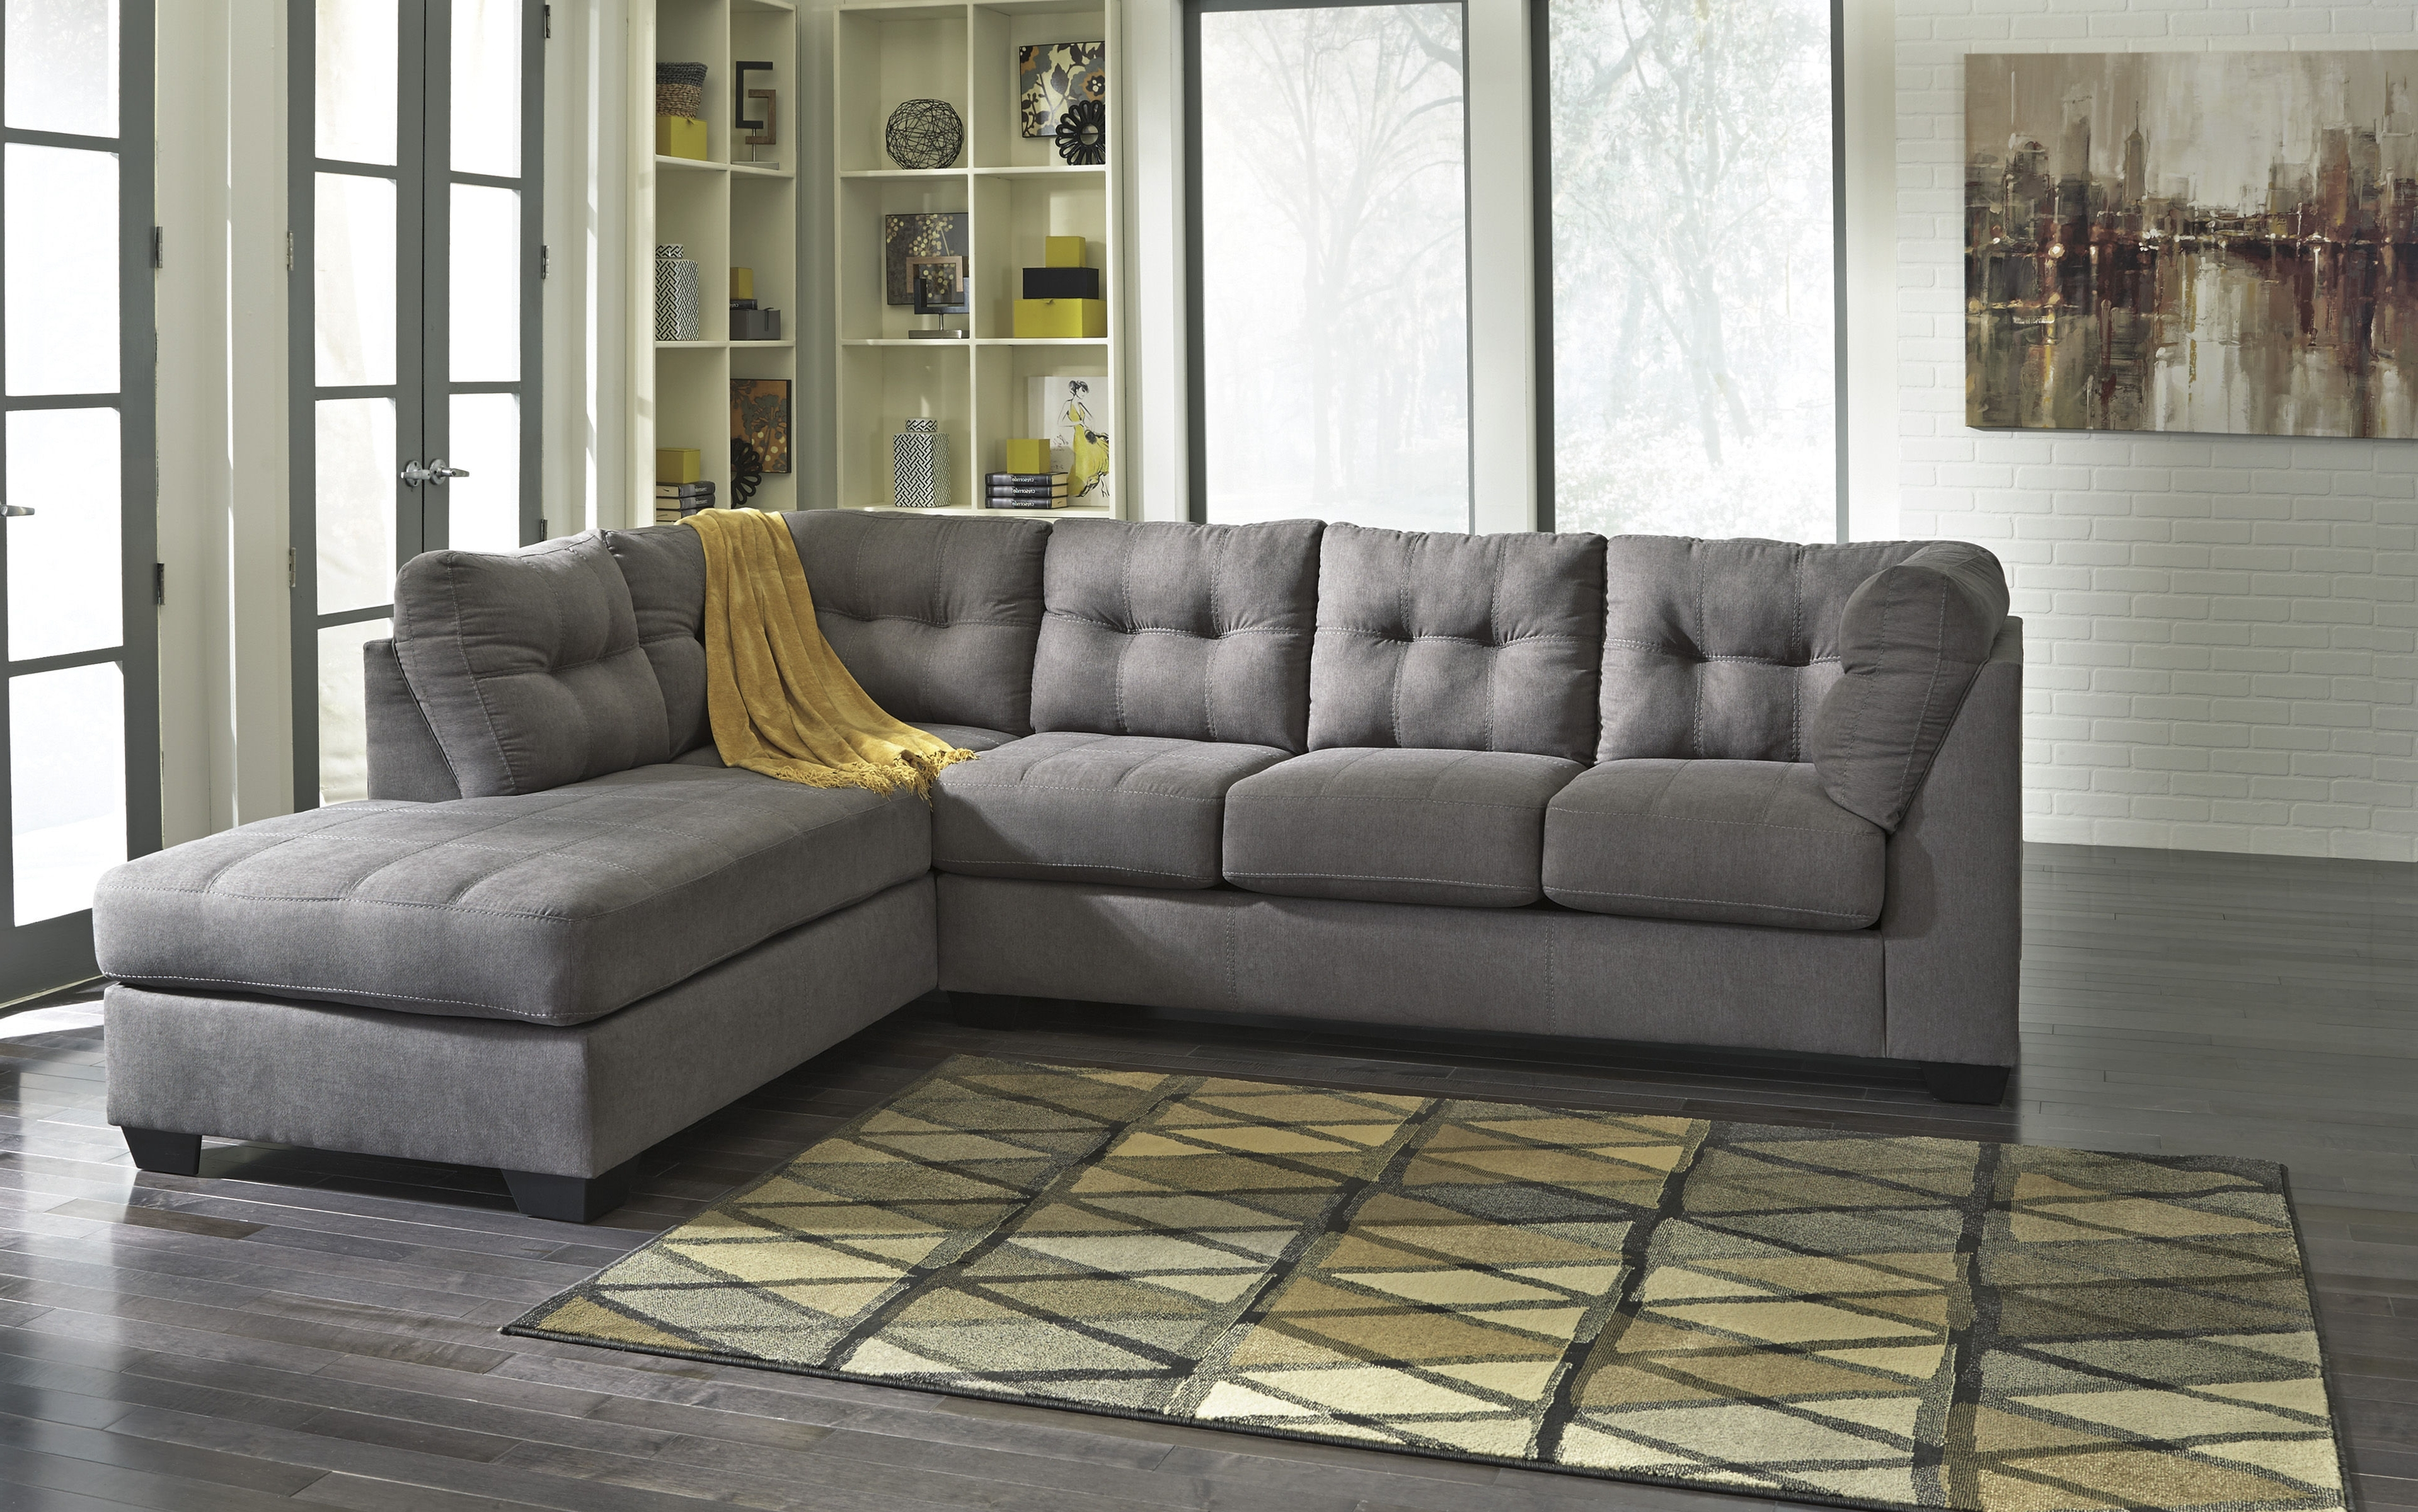 The Classy Home Regarding Charcoal Sectionals With Chaise (View 14 of 15)